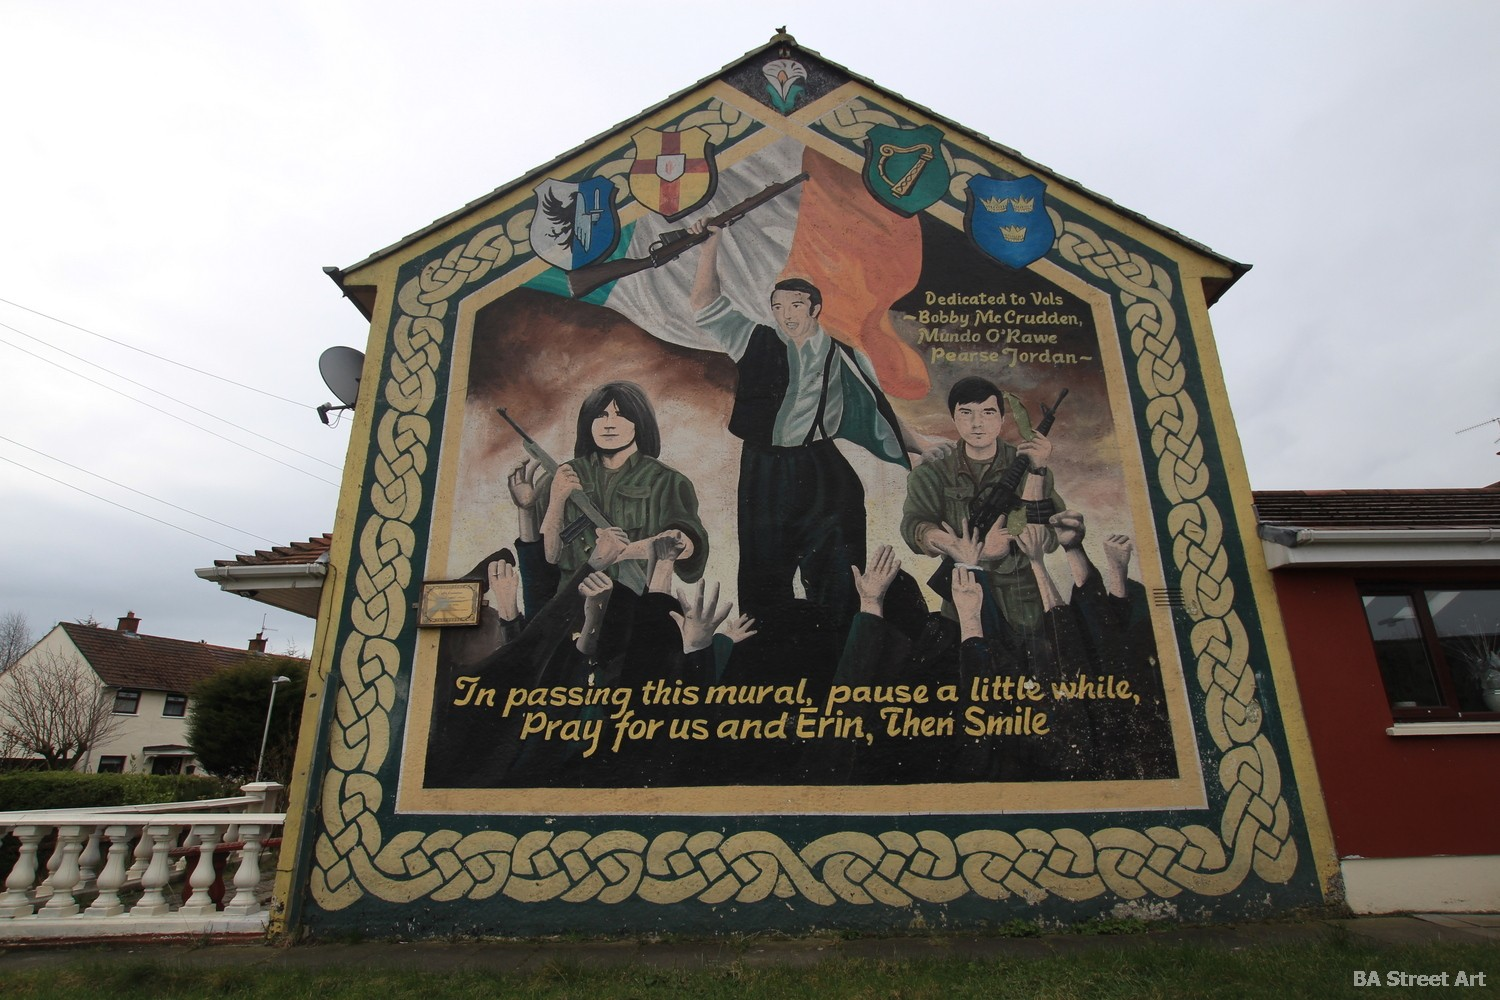 IRA mural belfast political graffiti propaganda bobby mcCrudden pray for us & erin northern ireland conflict